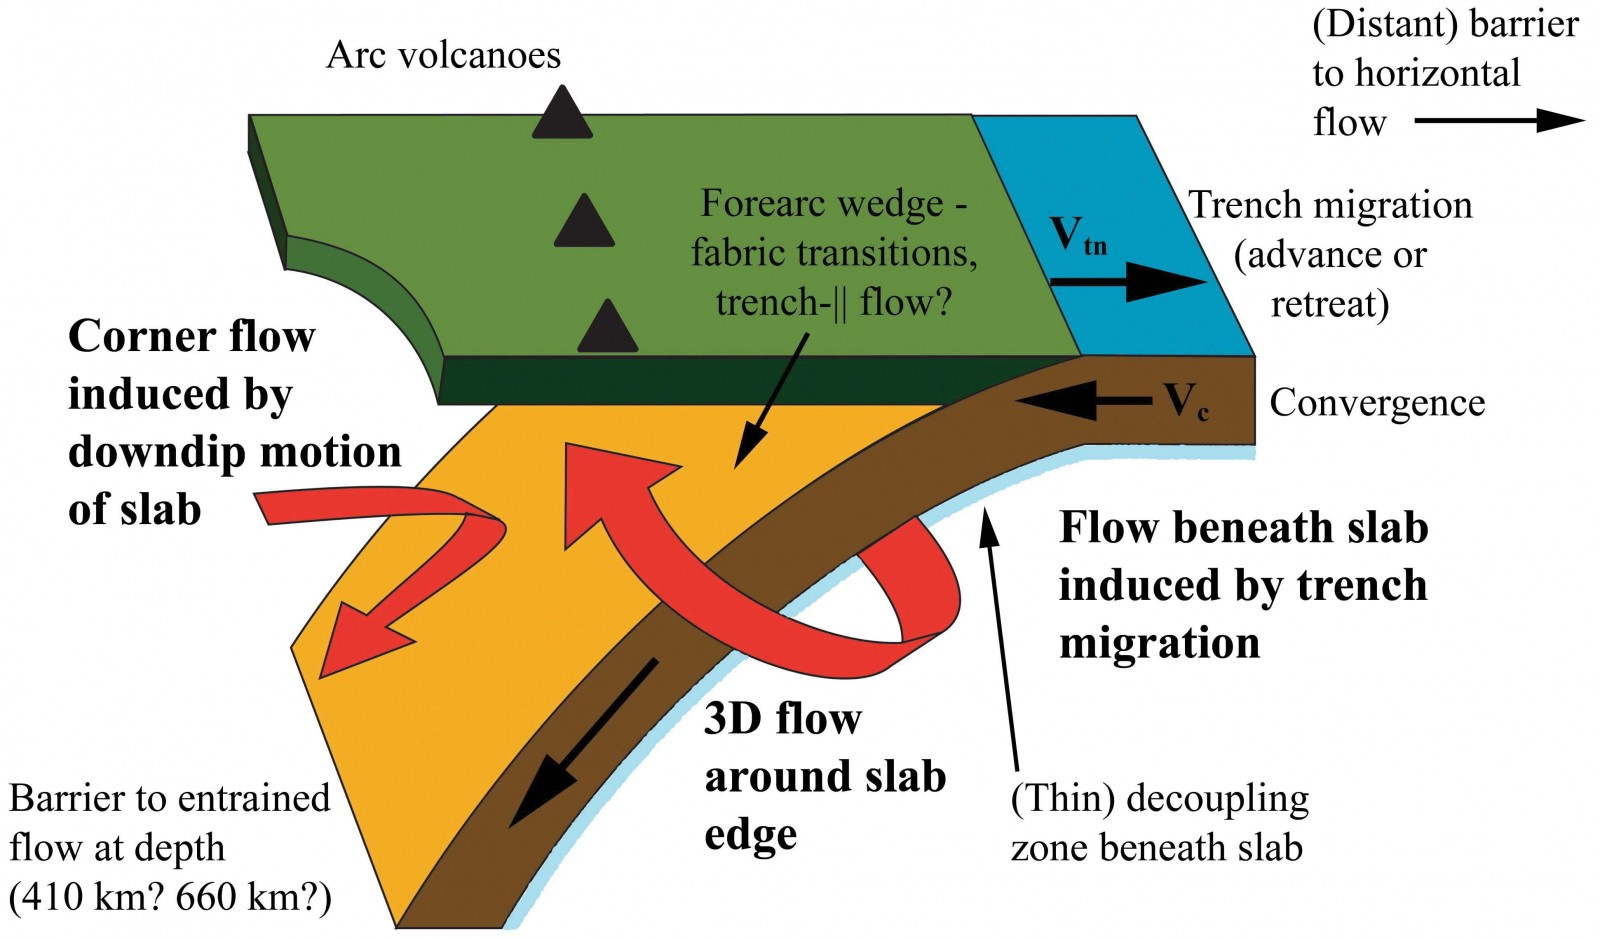 schematic diagram of a subduction zone, showing the dominance of 3d flow  beneath the slab and the competing influence of 2d and 3d flow fields in  the mantle